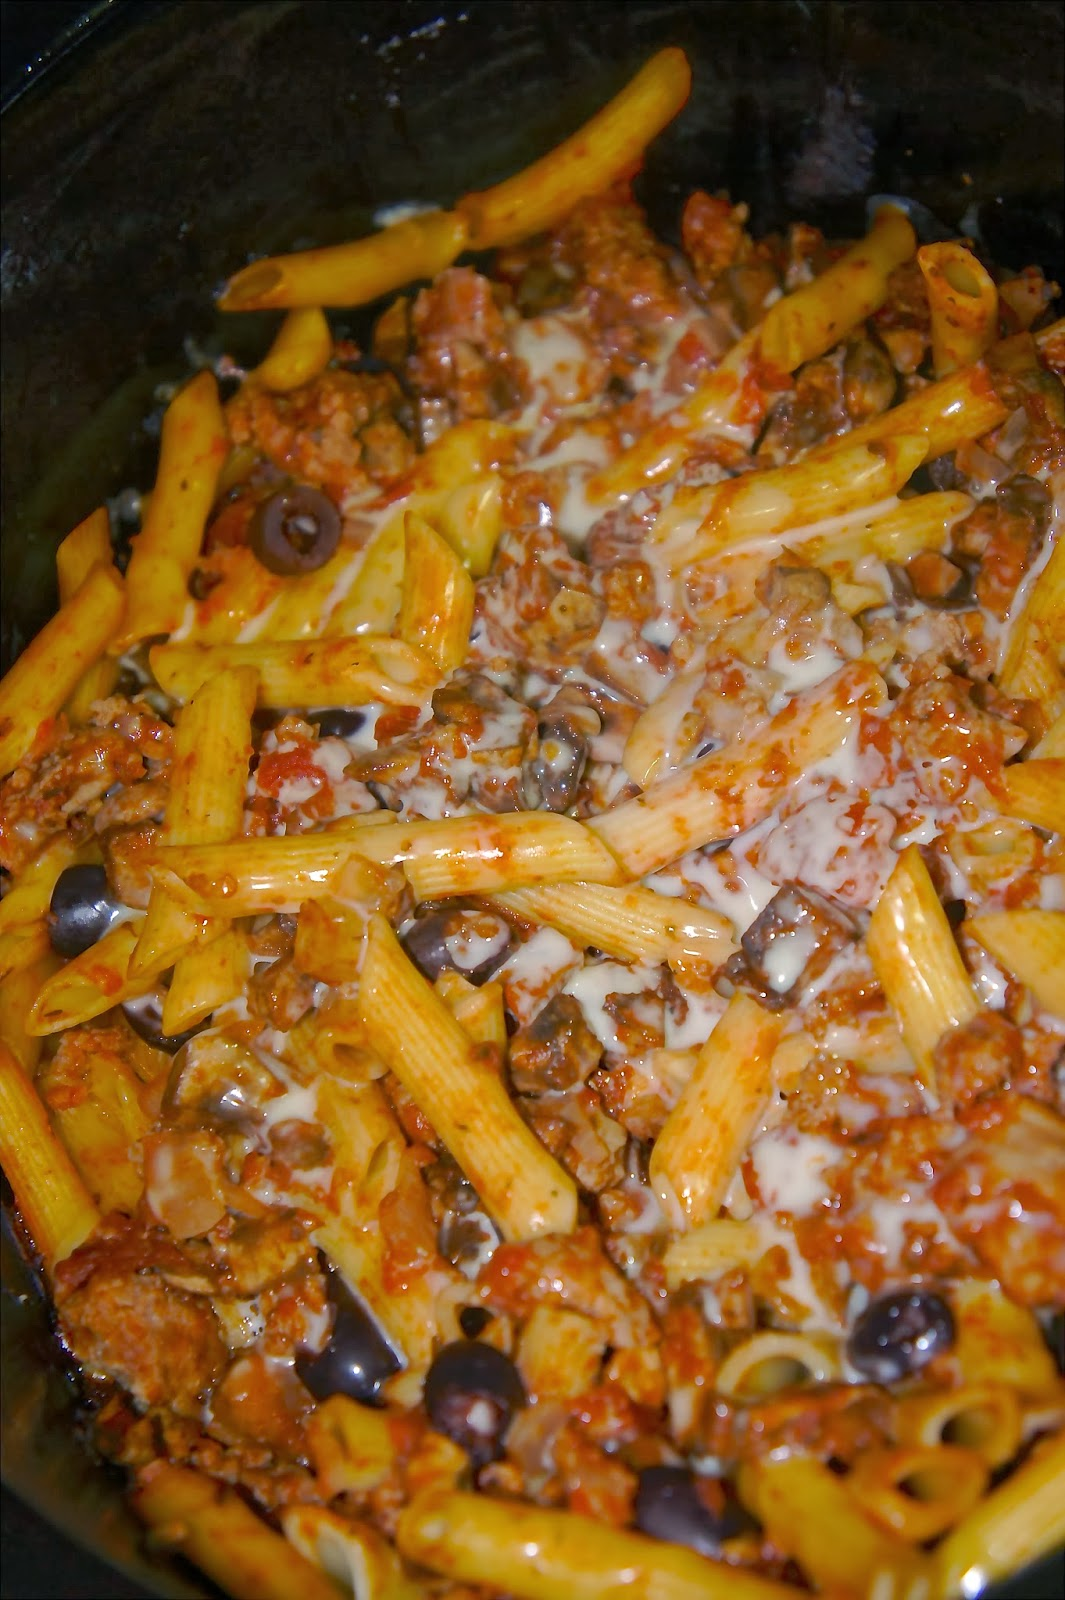 Savory Sweet and Satisfying: Sausage Pasta Casserole